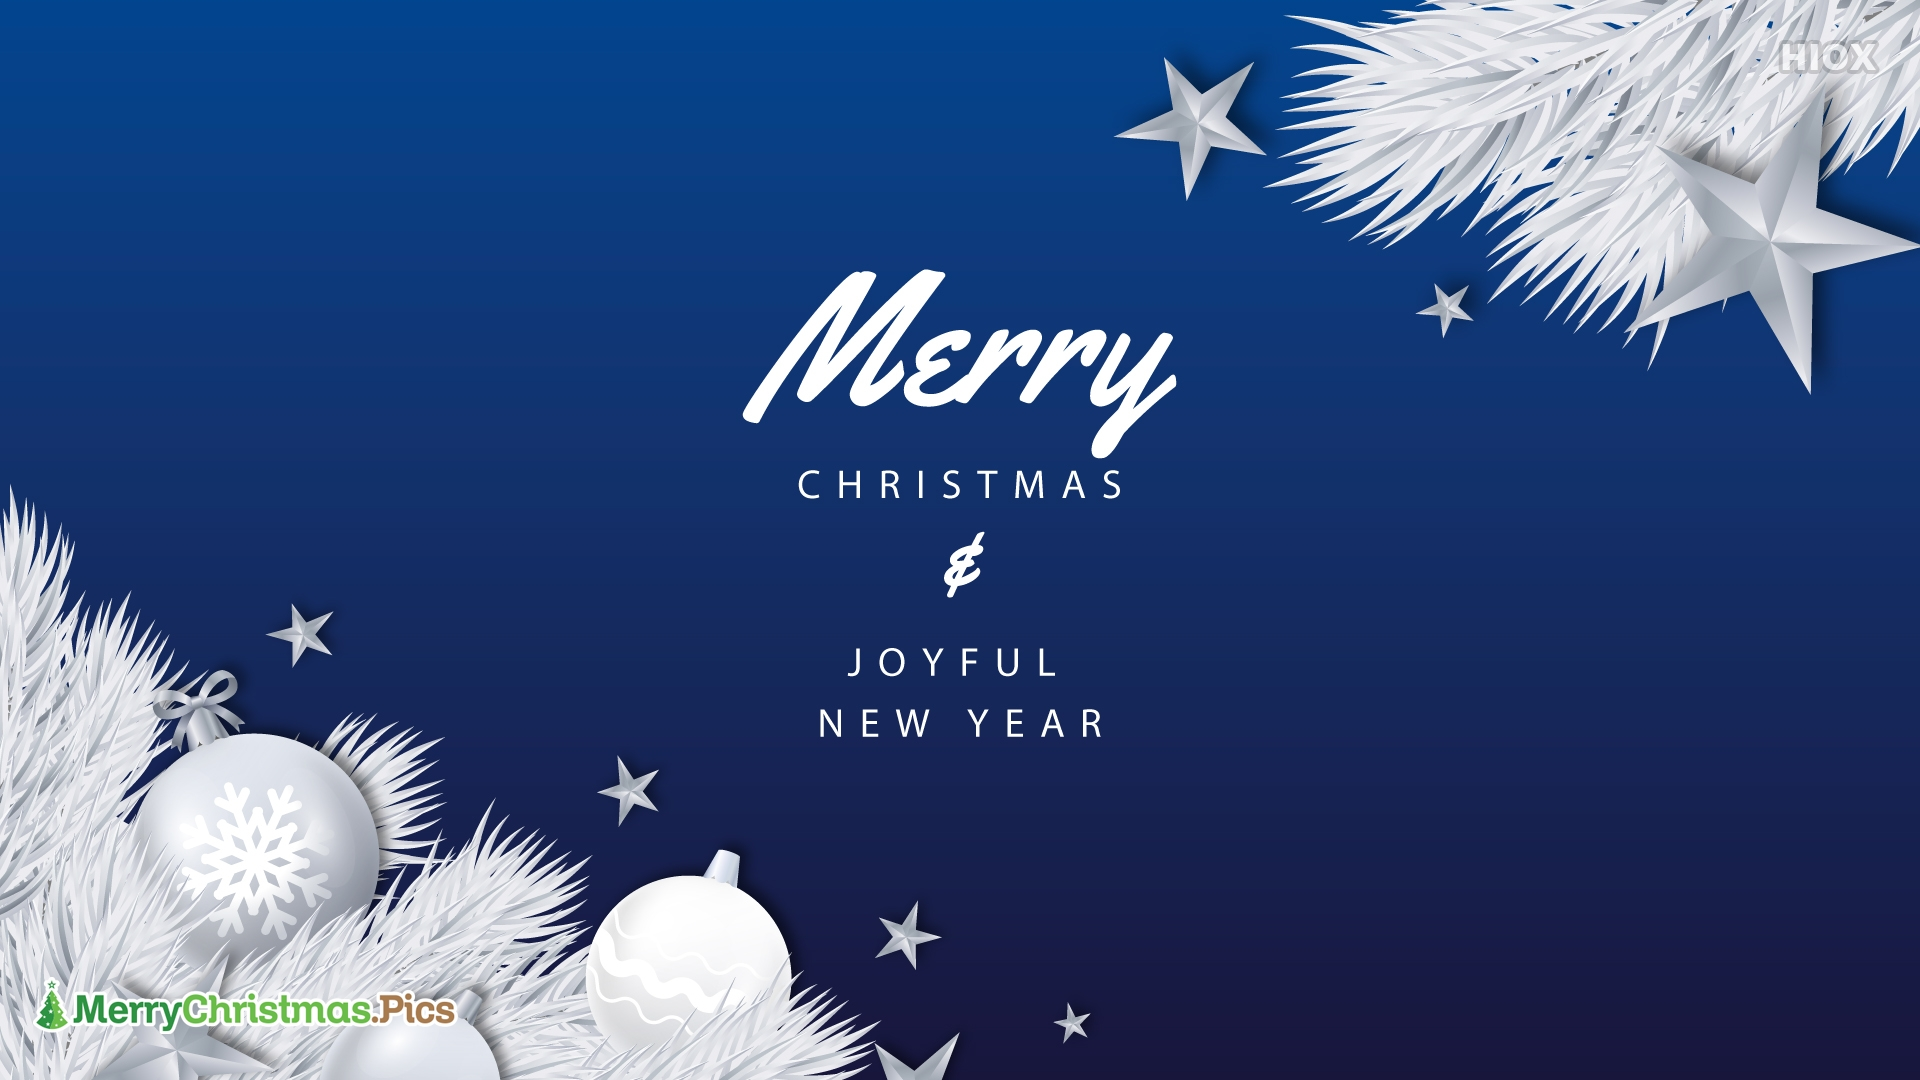 Merry Christmas and Joyful Newyear.